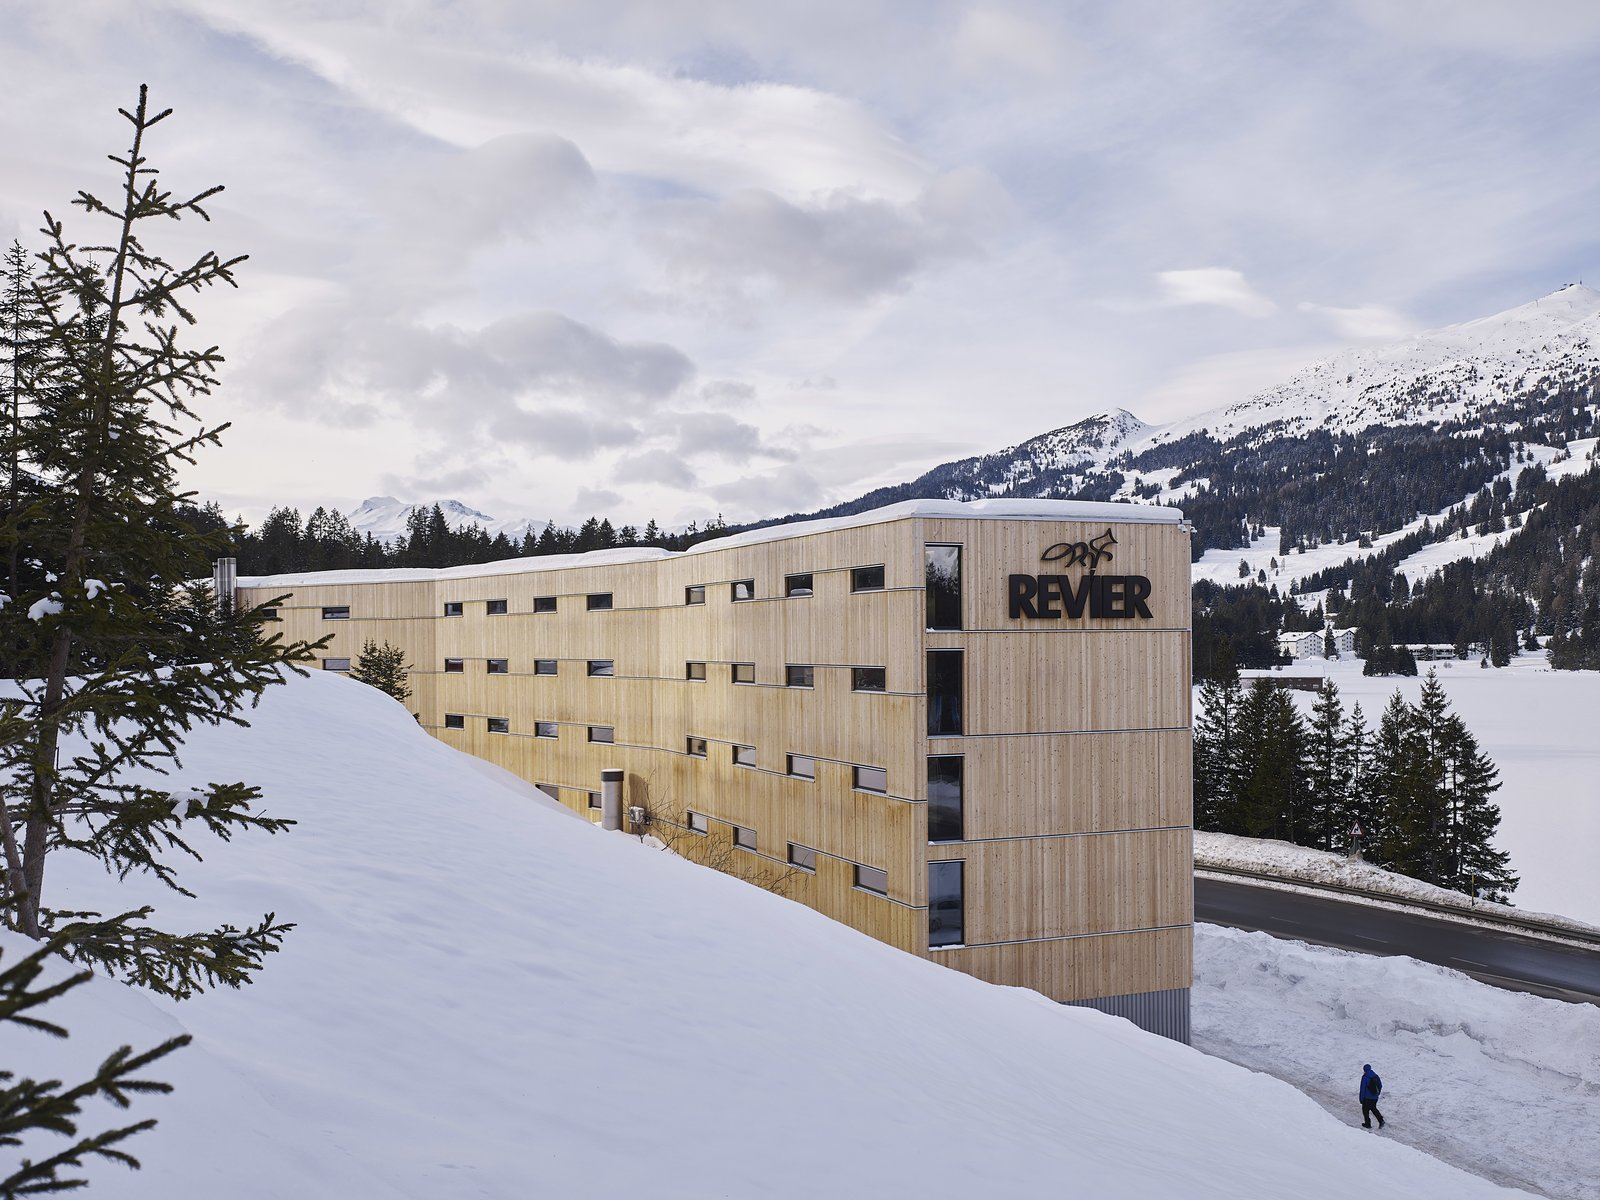 The two angled elements of the building follow the shoreline of the Heidisee Lake.